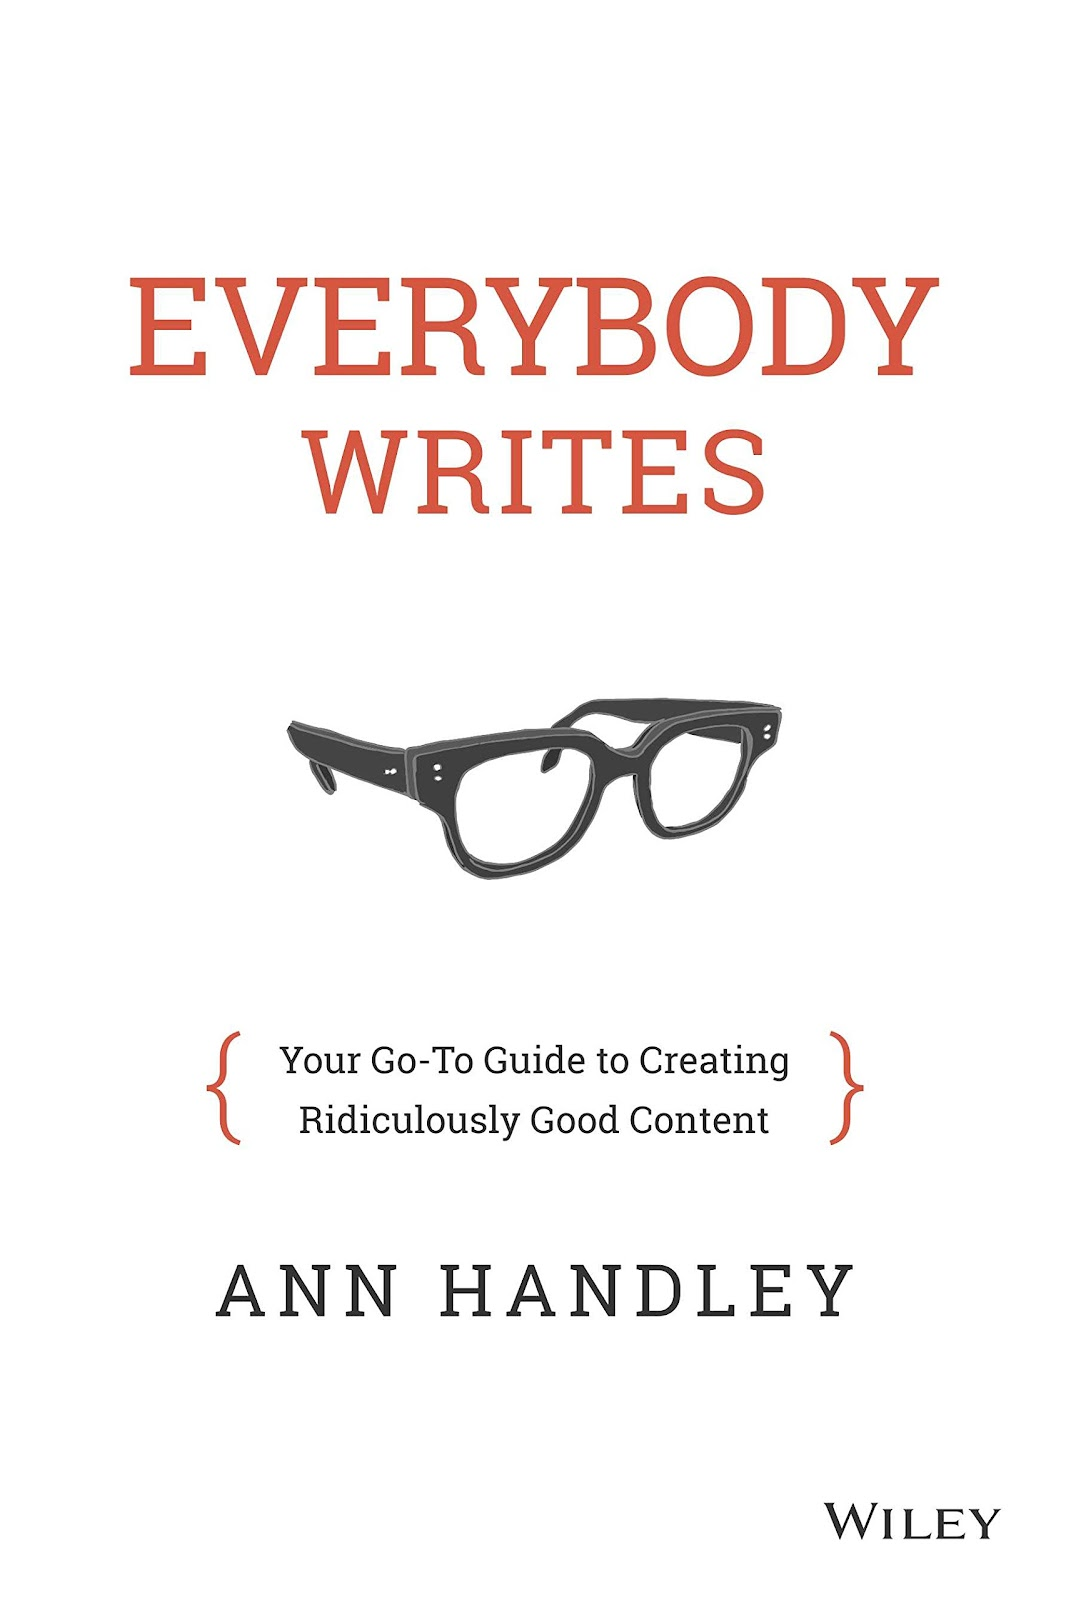 Everybody Writes: The Go-To Guide to Creating Ridiculously Good Content by Ann Handley